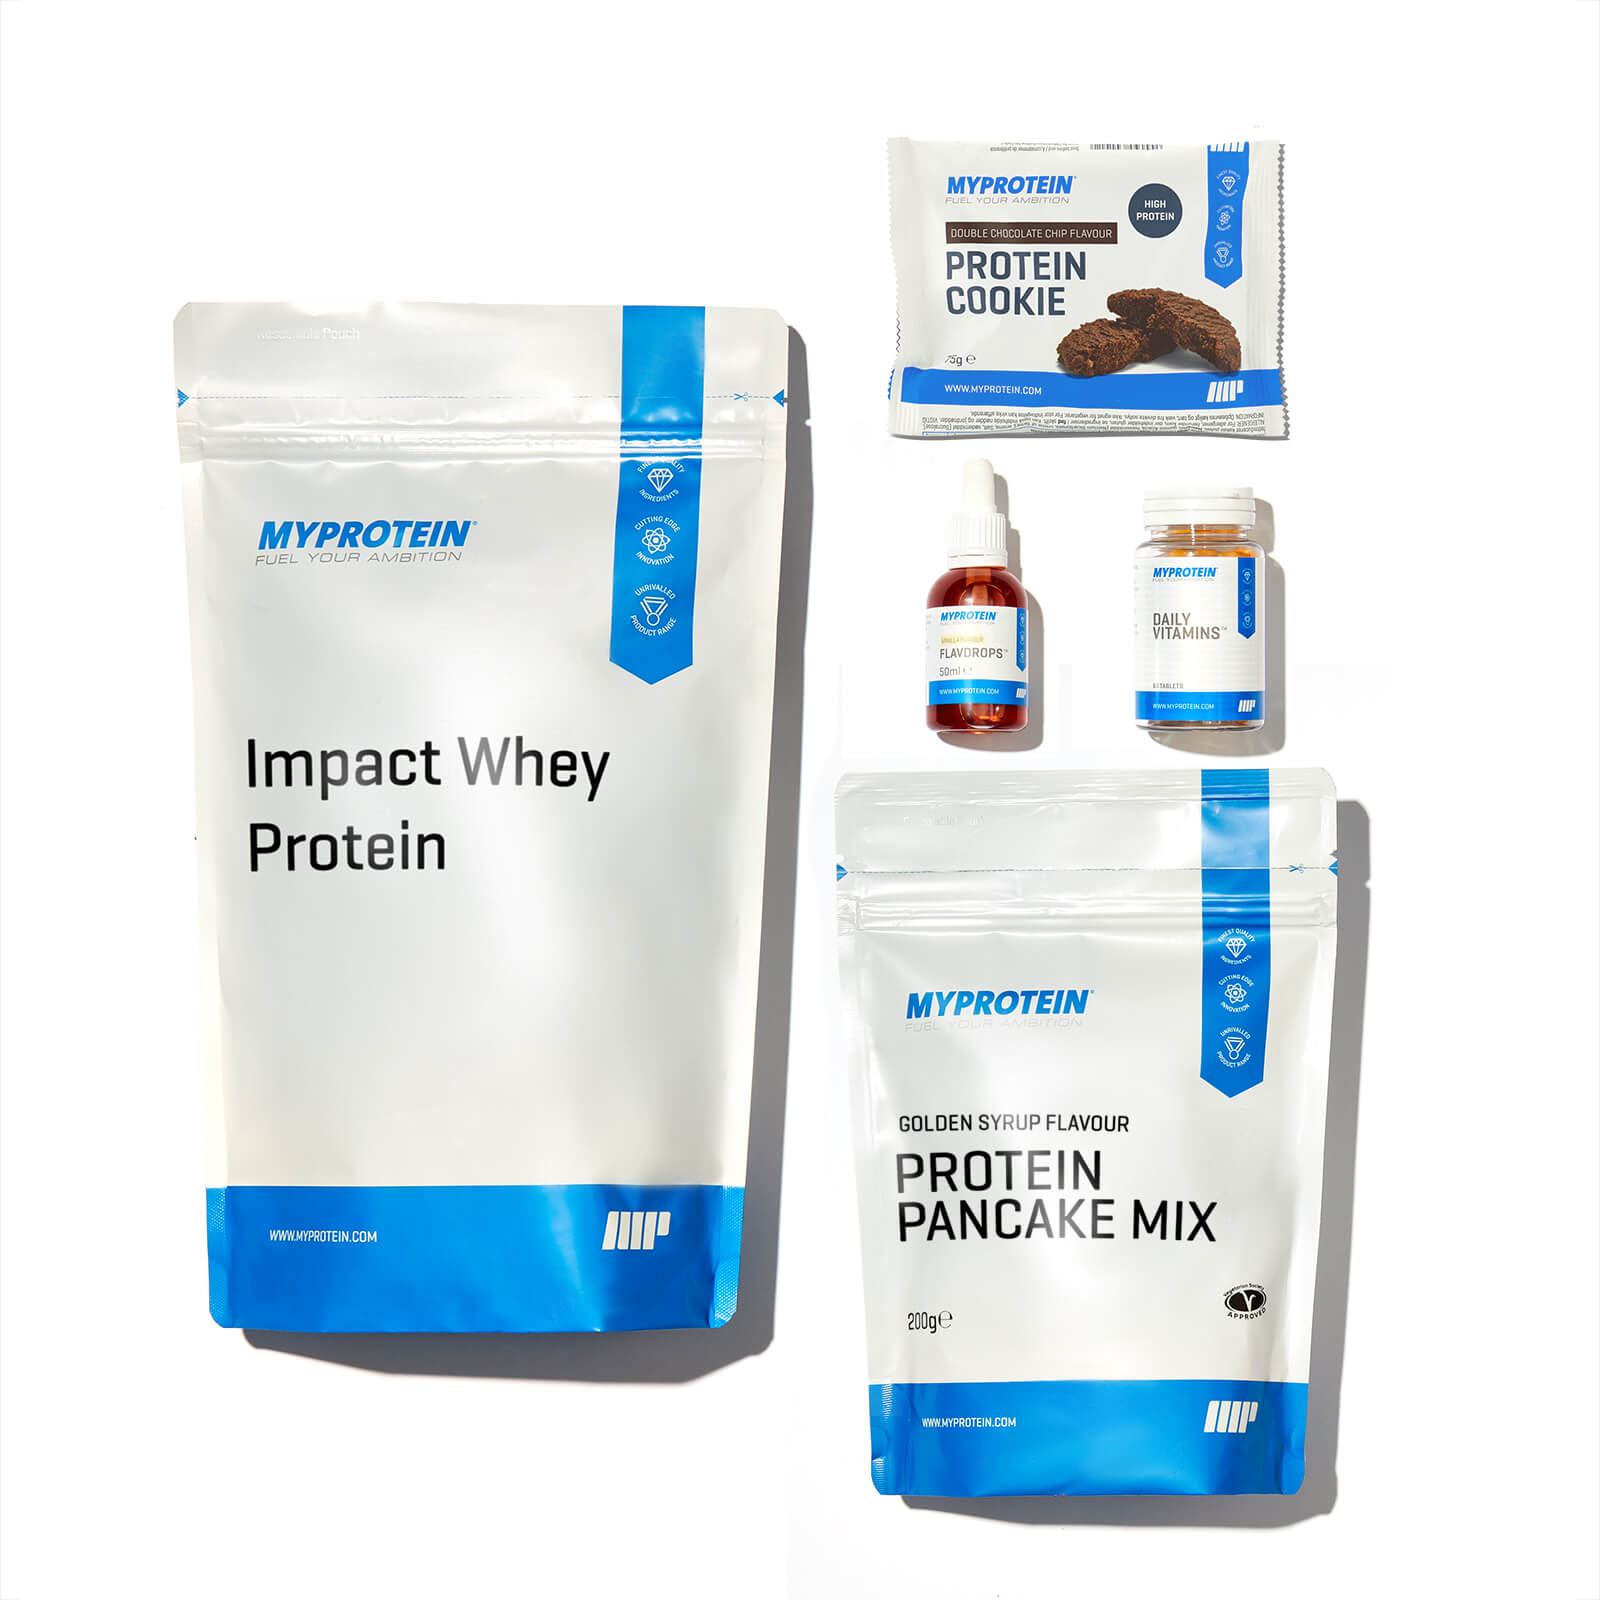 Myprotein App Weight Loss Bundle - Double Chocolate - White Chocolate - Cookies and Cream